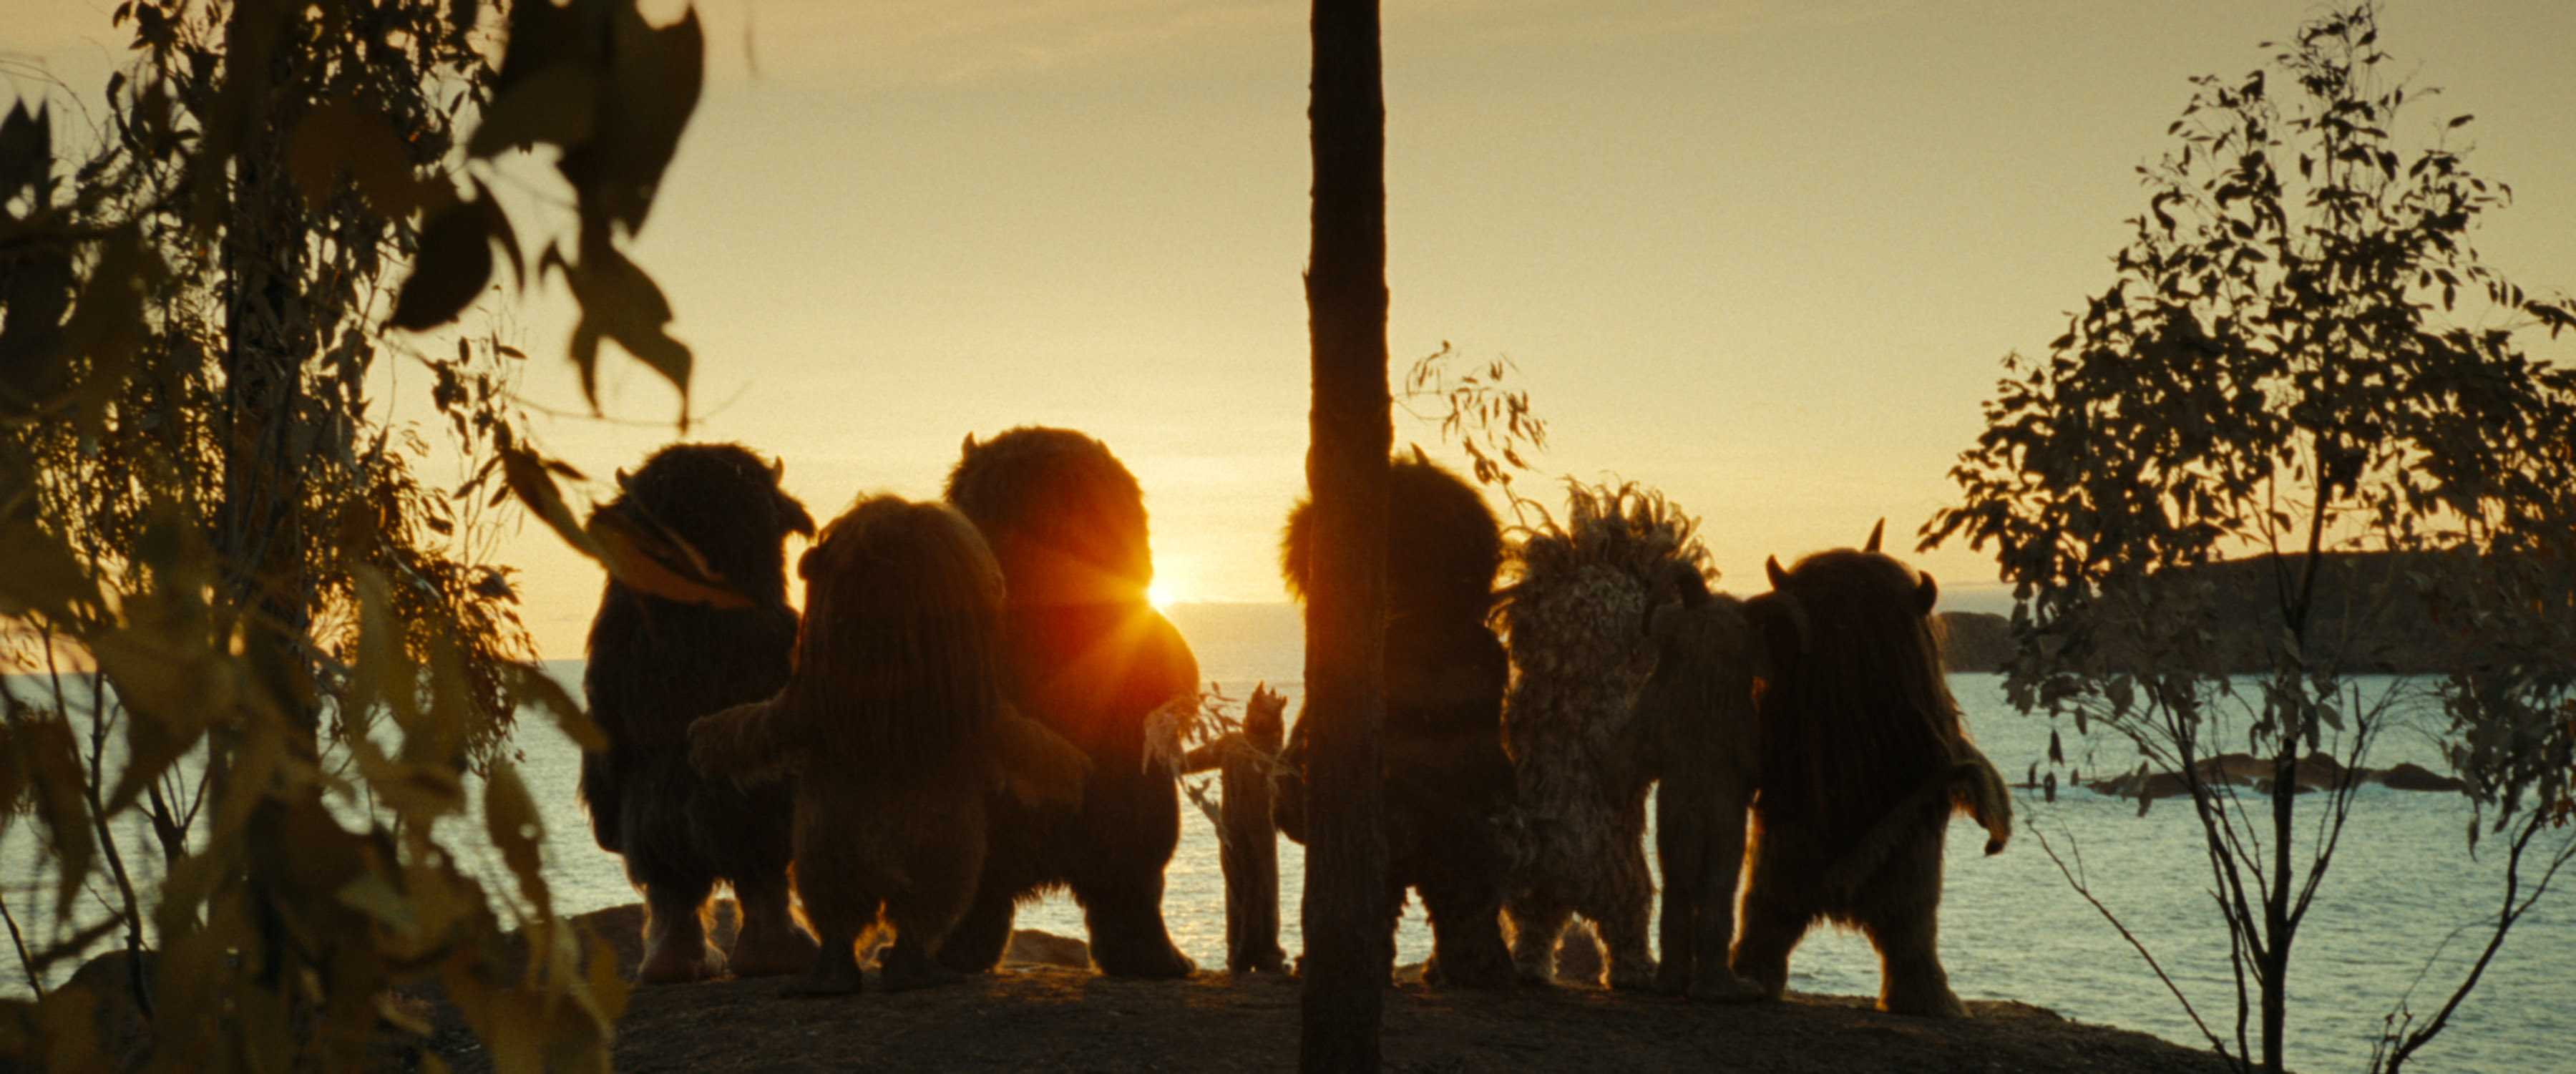 where the wild things are hd desktop wallpapers